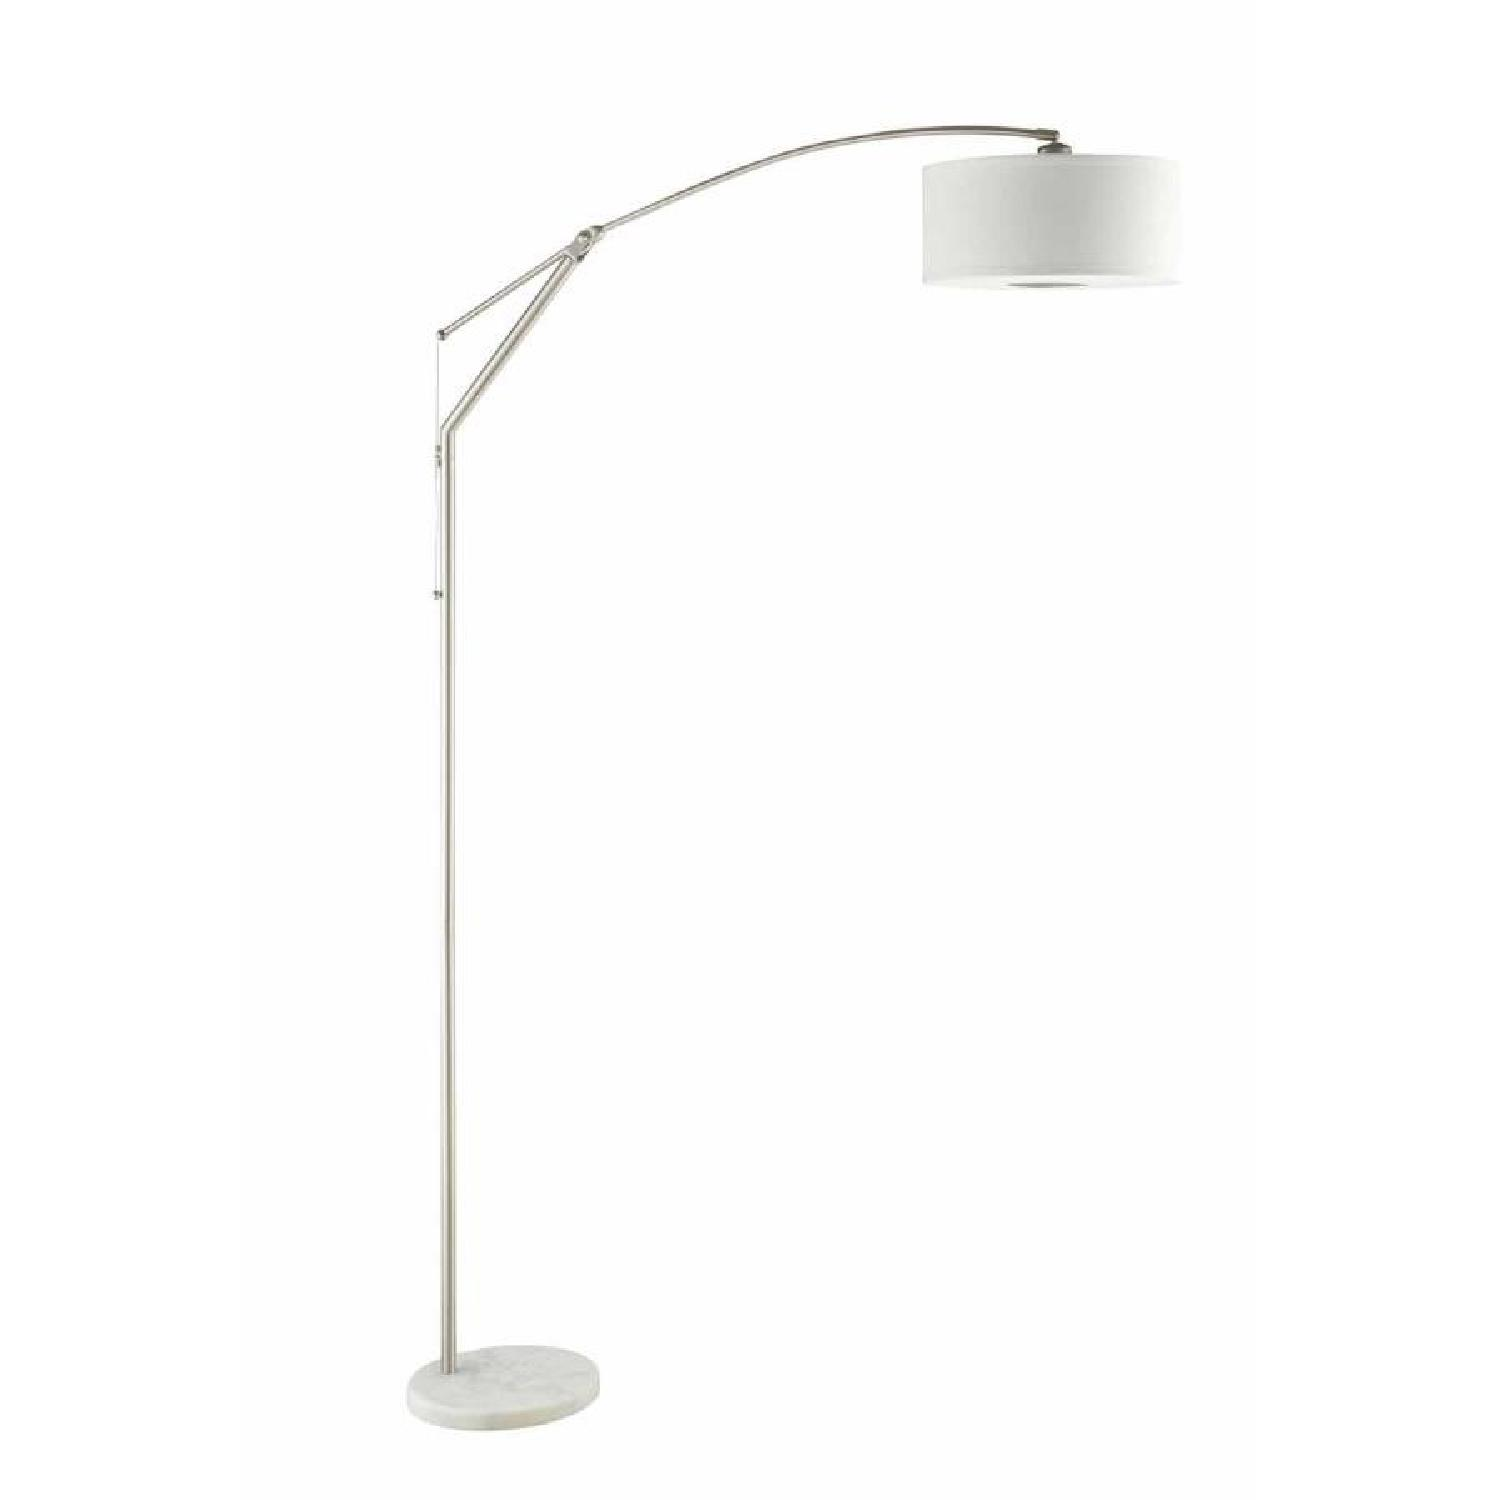 Floor Lamp w/ Arched Back & Round White Pendent Shade - image-0